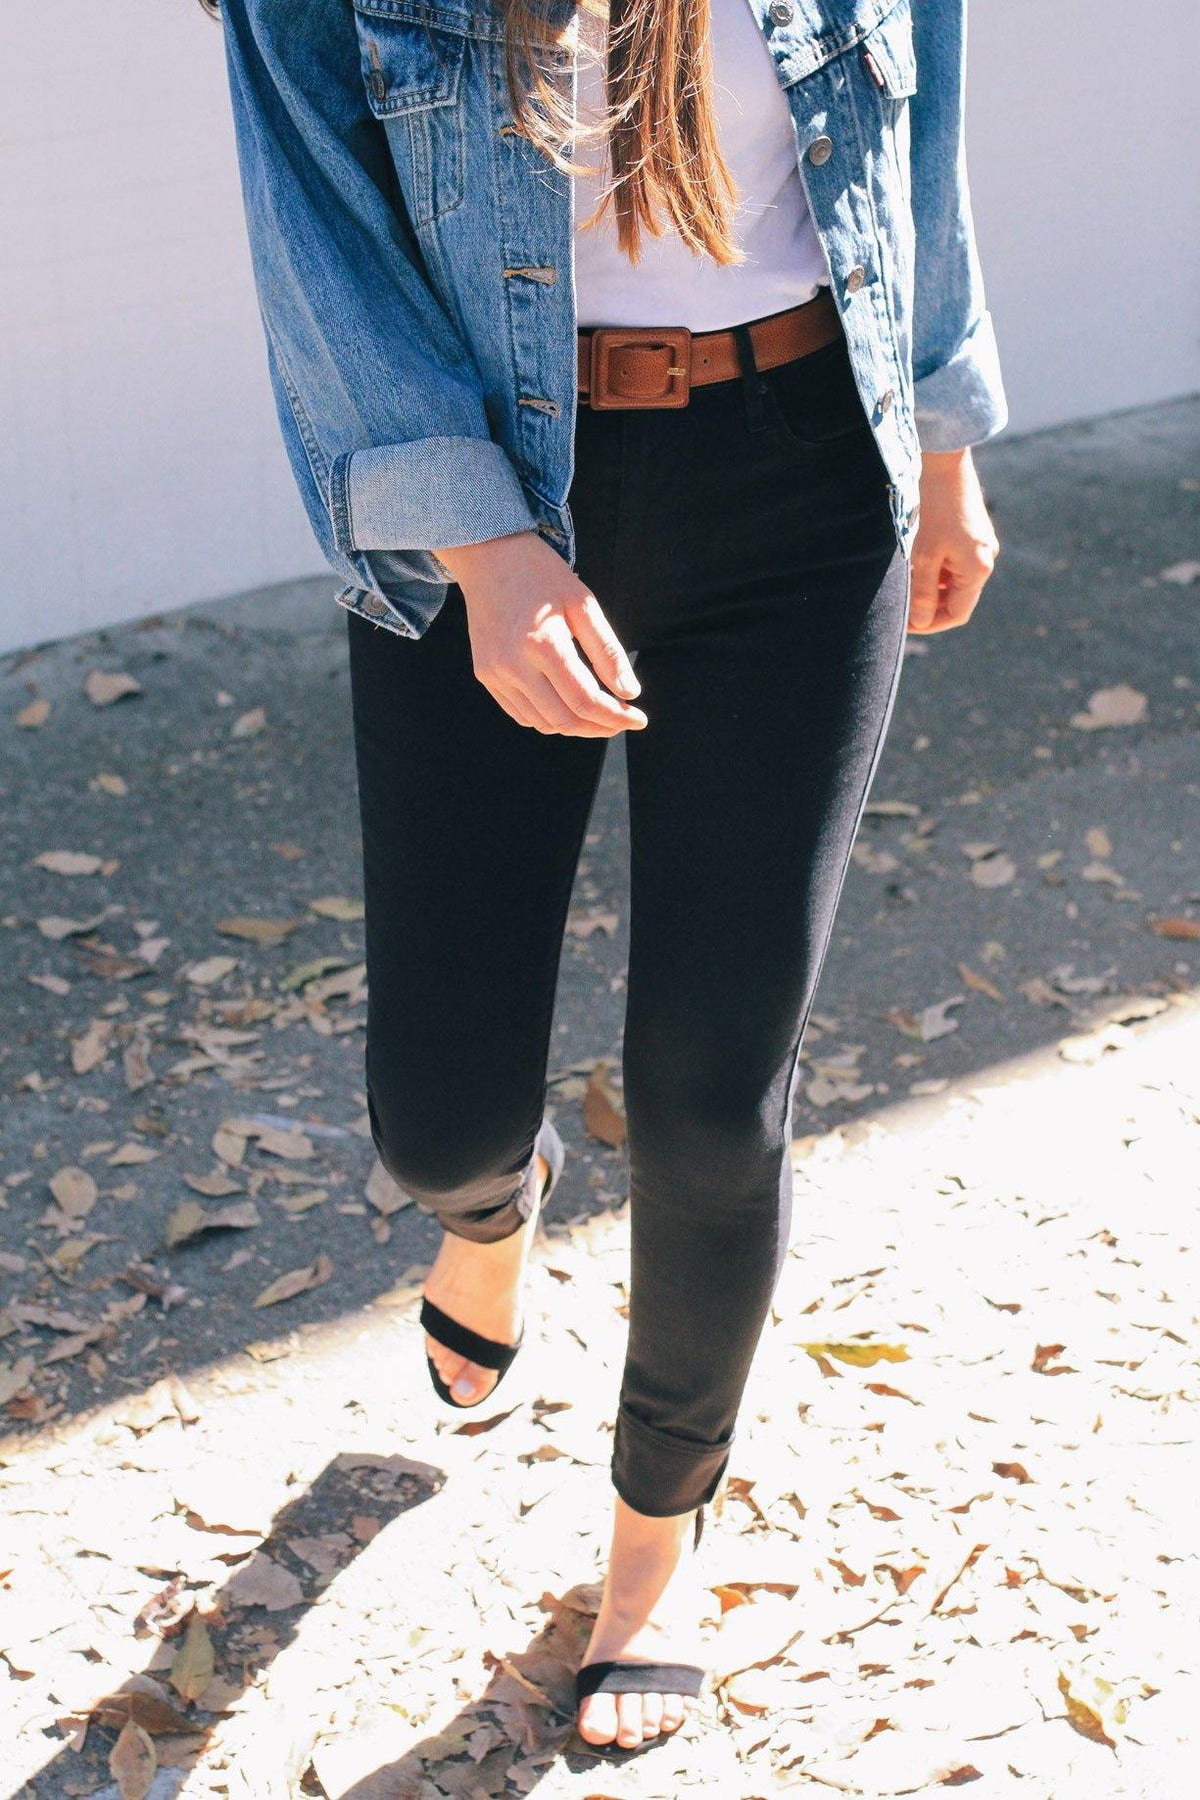 Levi's Black 721 High Rise Skinny Jeans from Sweet & Spark